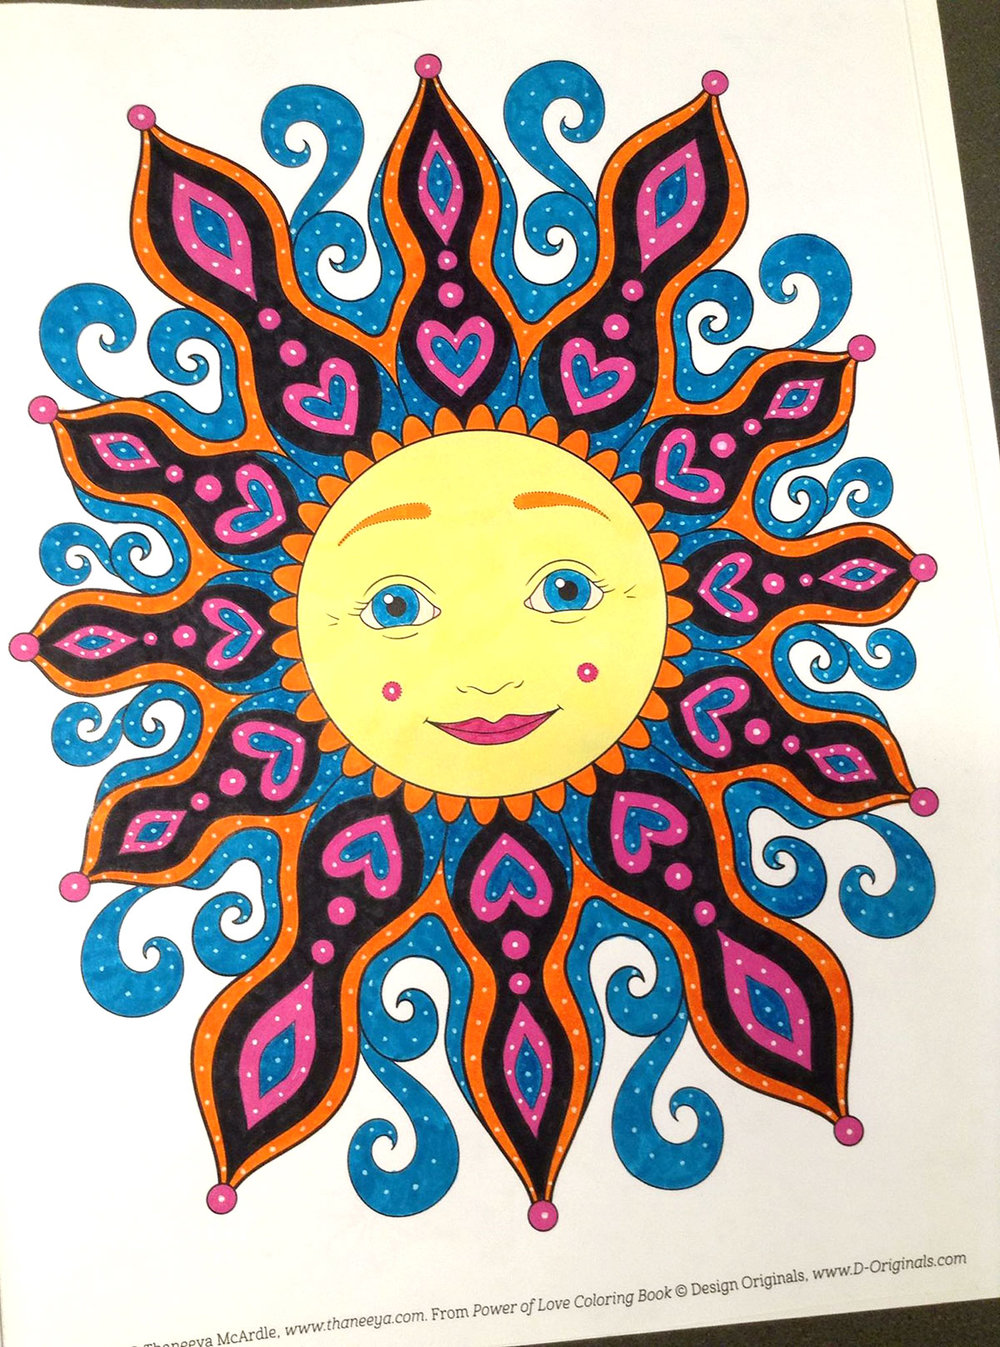 Sun coloring page from Thaneeya McArdle's Power of Love Coloring Book, colored by Tammy M